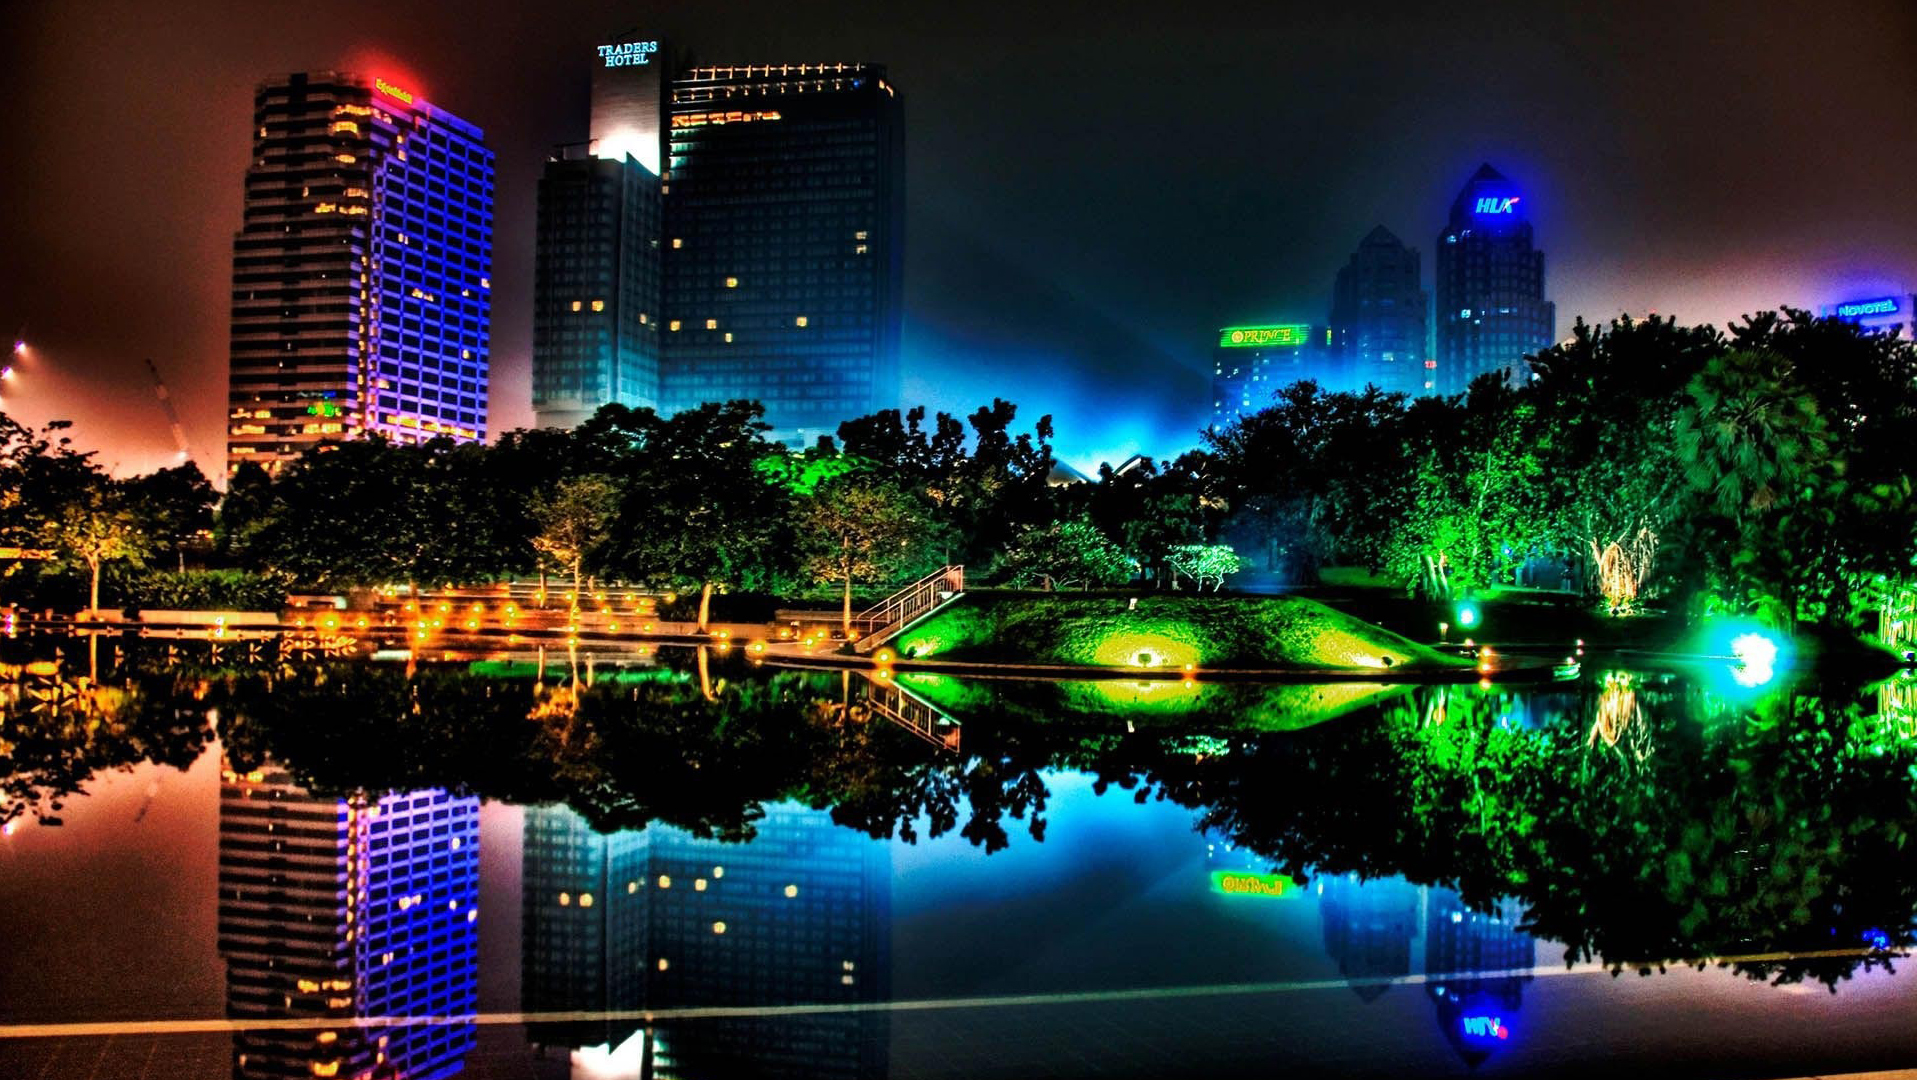 HD Wallpapers Of Cities